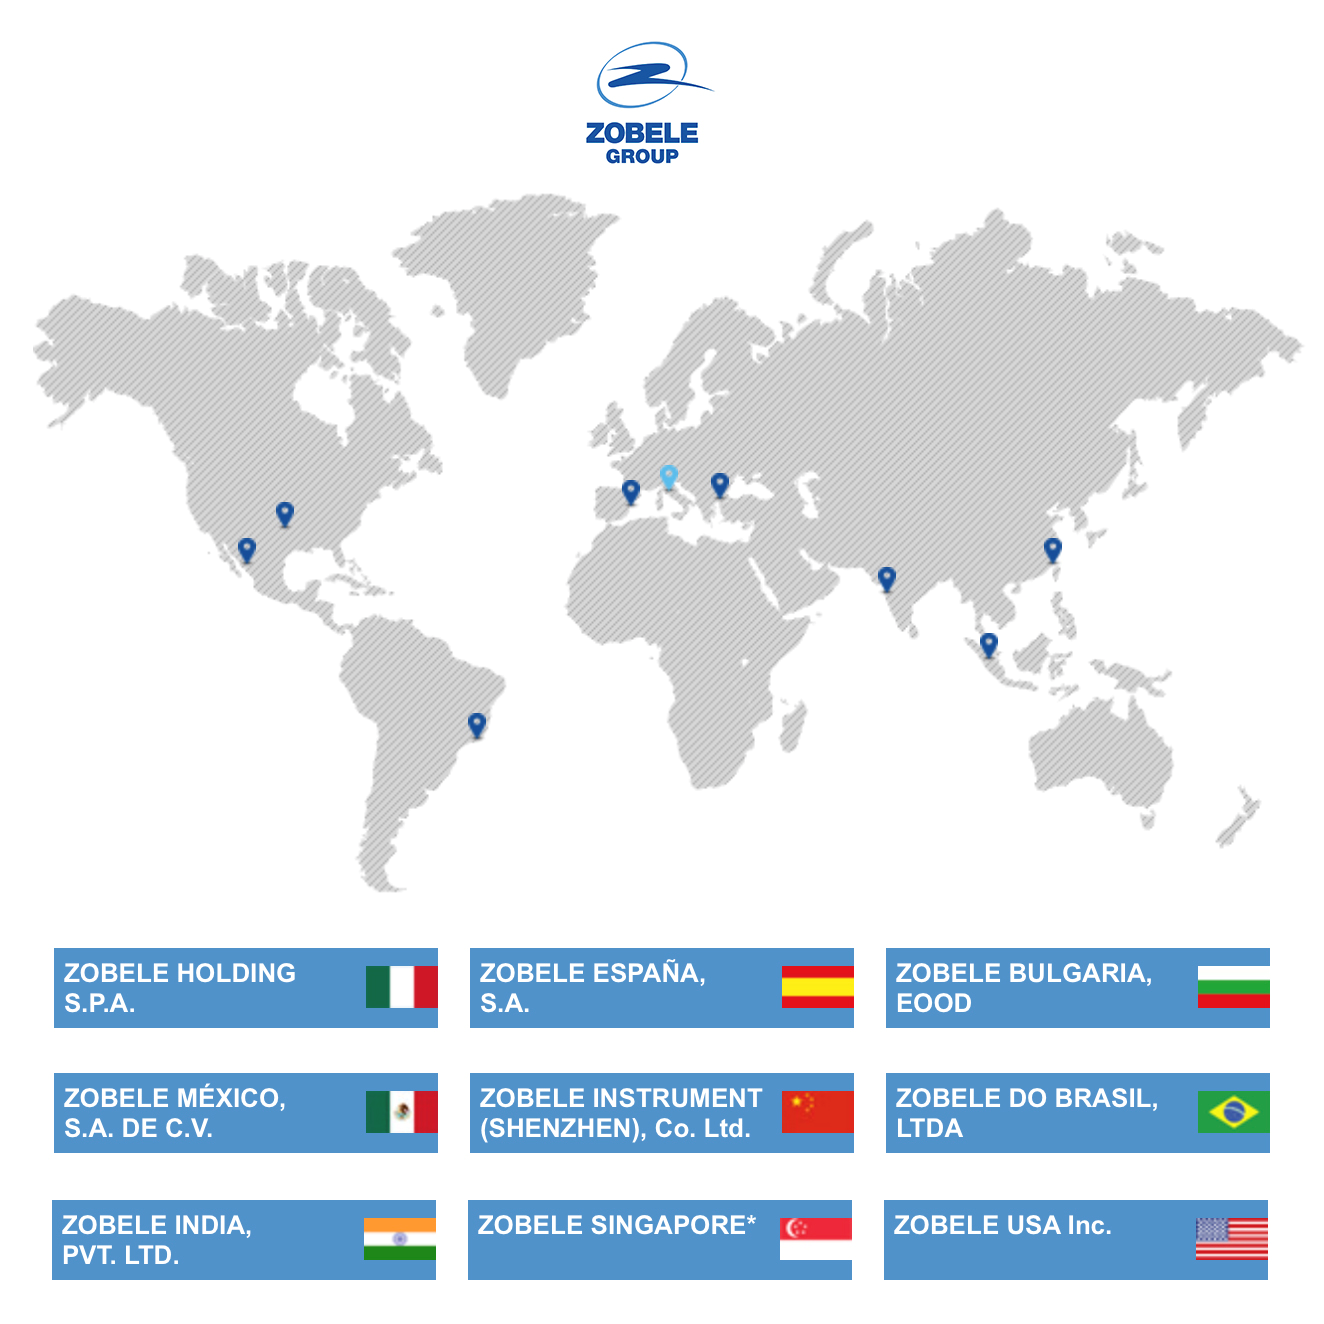 *Zobele's manufacturing plants across the world